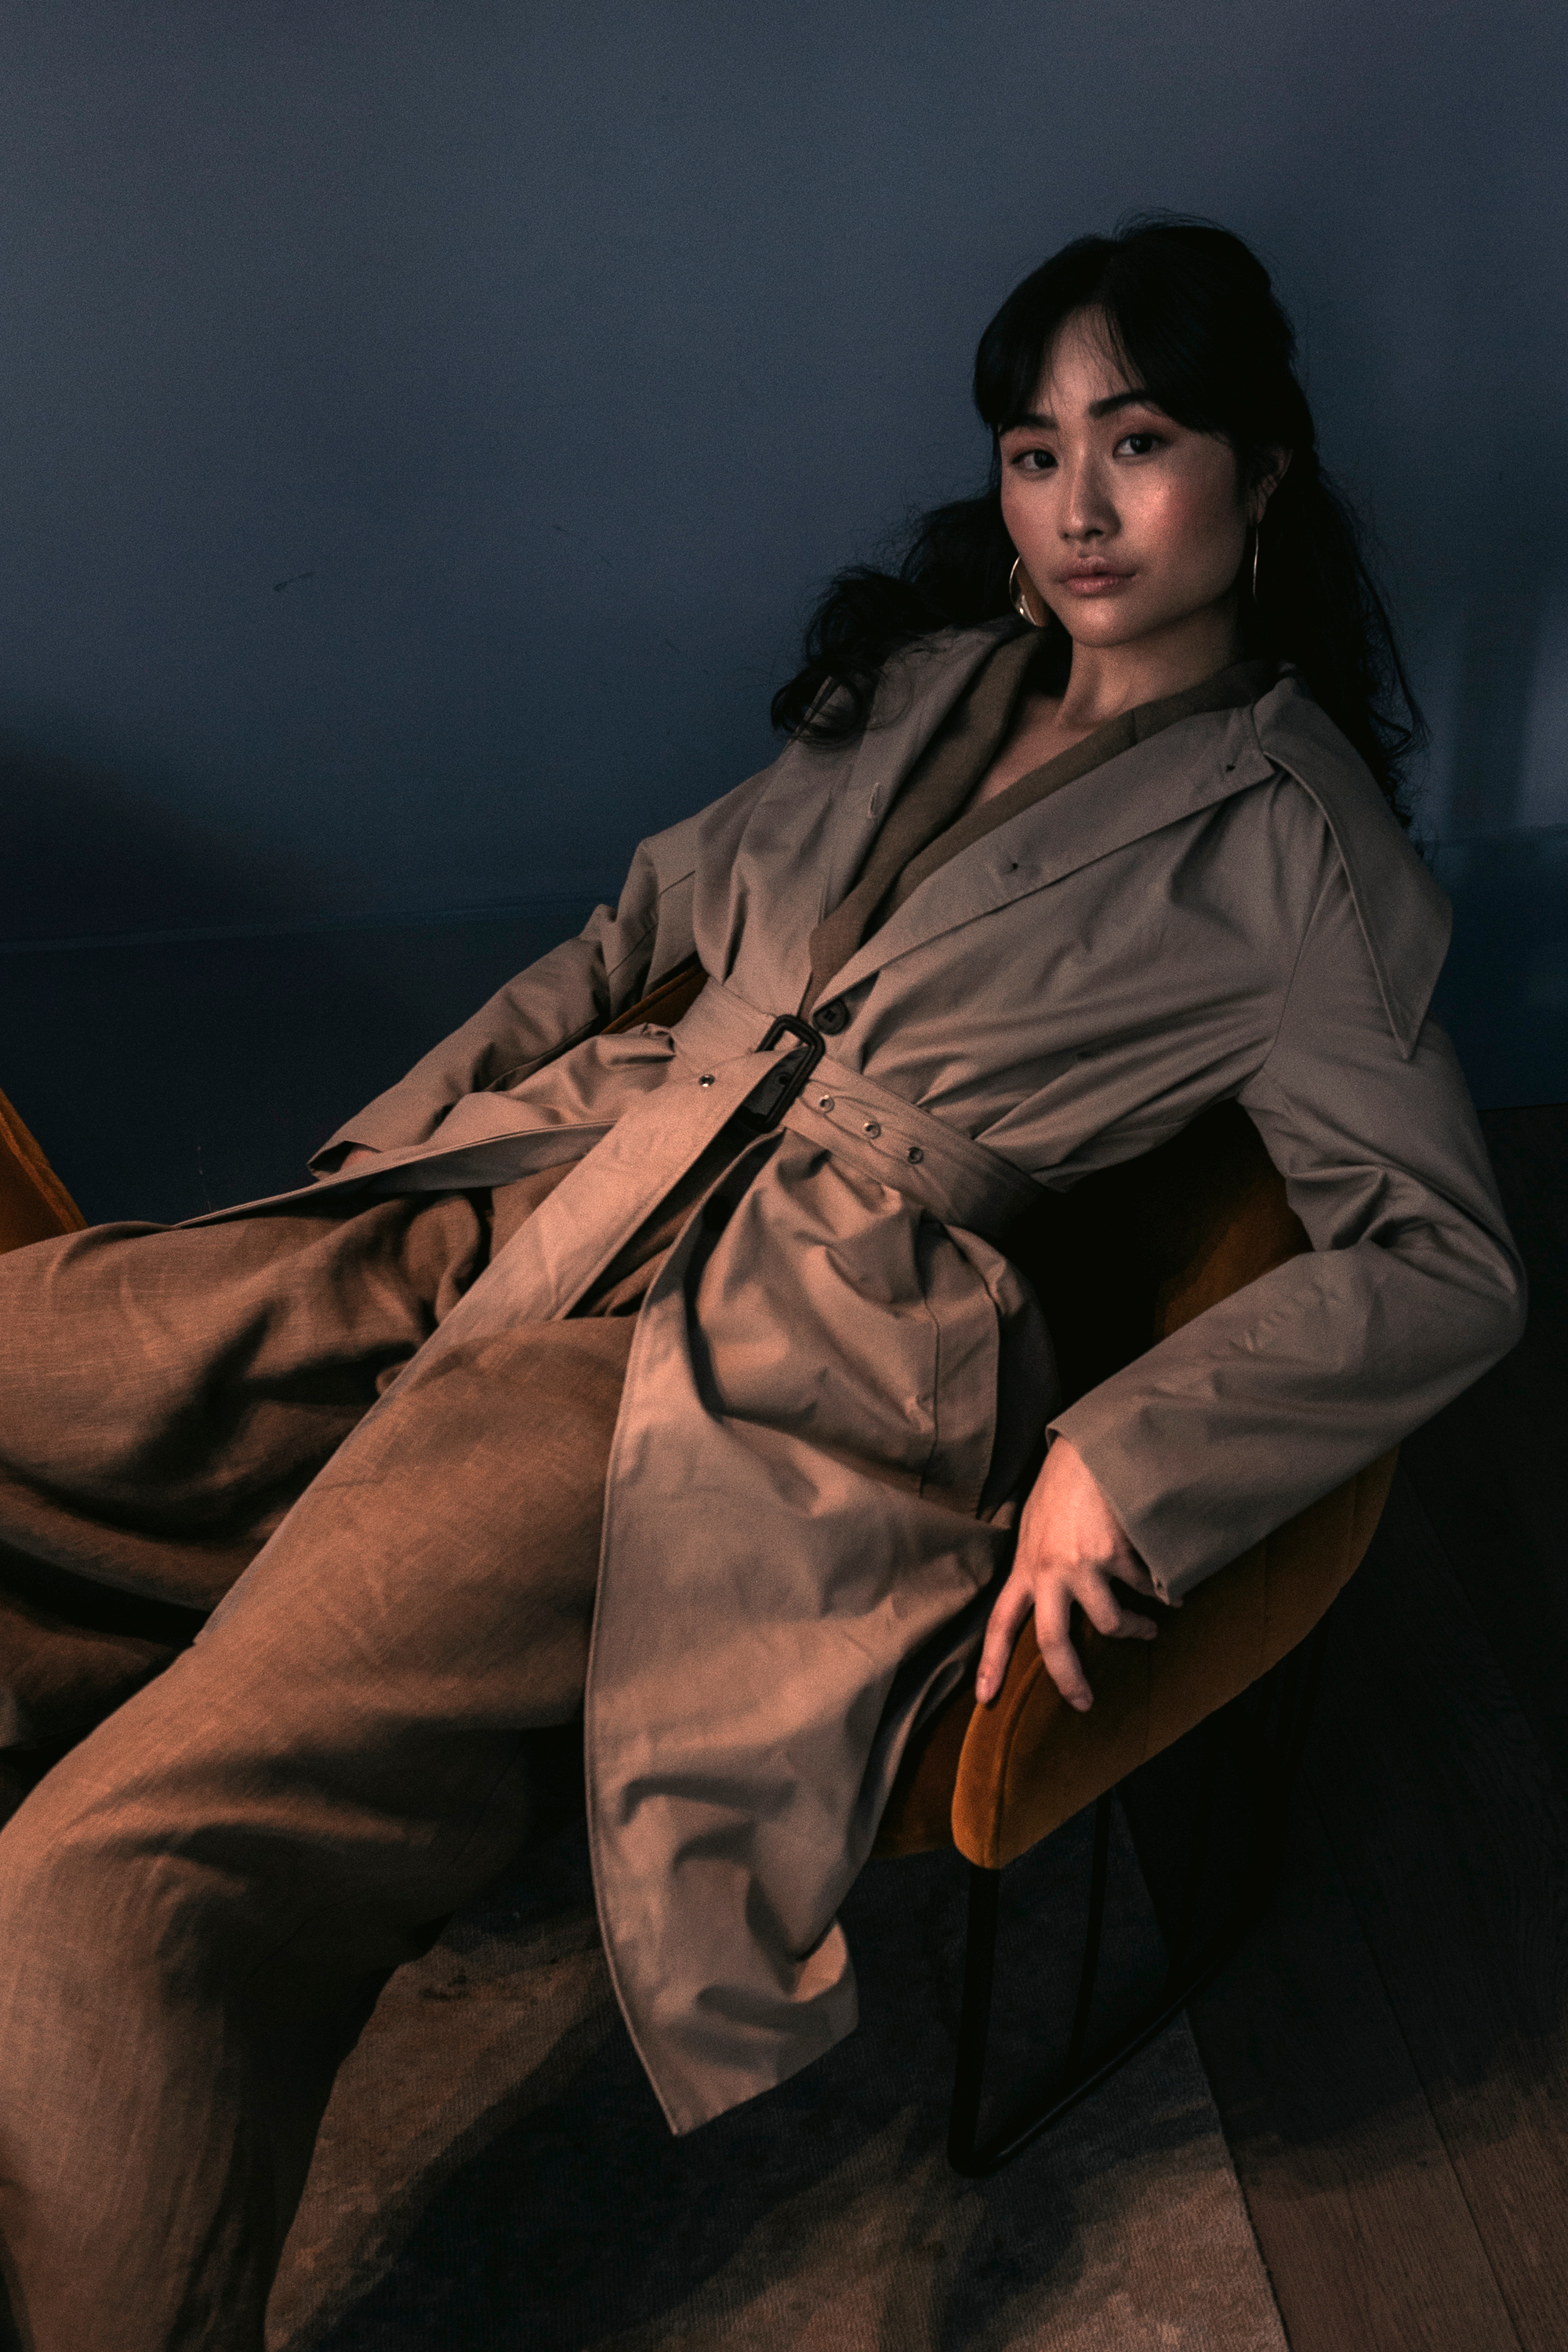 Jumpsuit: Linen Brown Jumpsuit  The Frankie Shop  Shoes: Thrifted Stylist Own Earrings: Topshop Stylist Own Coat: Pointy collar beige trench from  The Frankie Shop